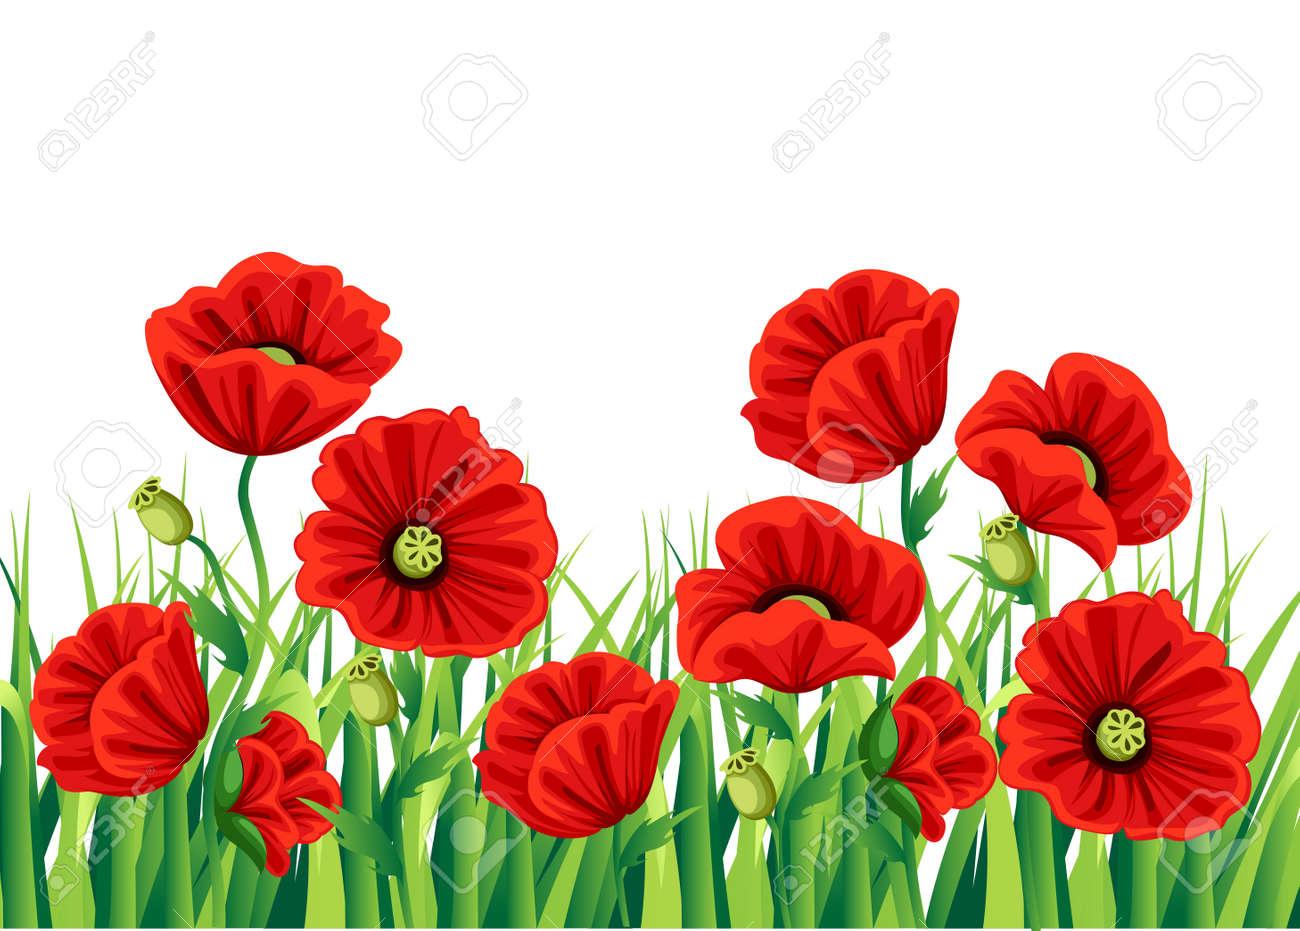 Red poppy flower isolated on white background vector red romantic red poppy flower isolated on white background vector red romantic poppy flowers and grass mightylinksfo